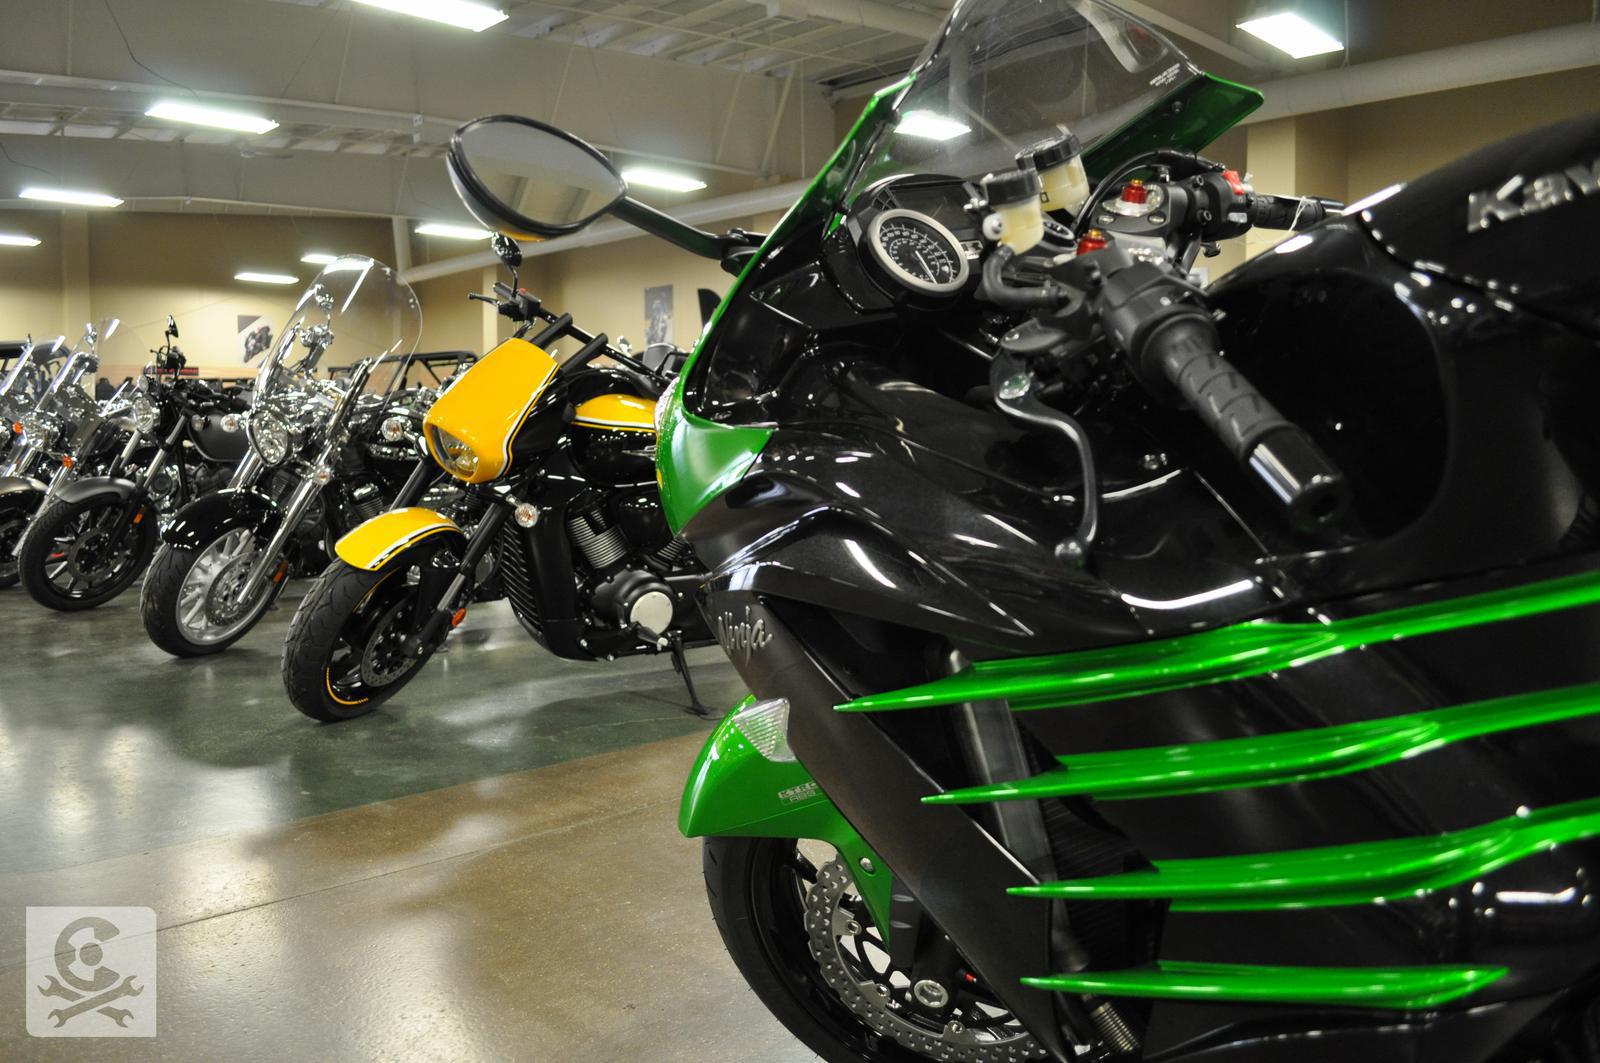 cc powersports louisville, ky cc powersports